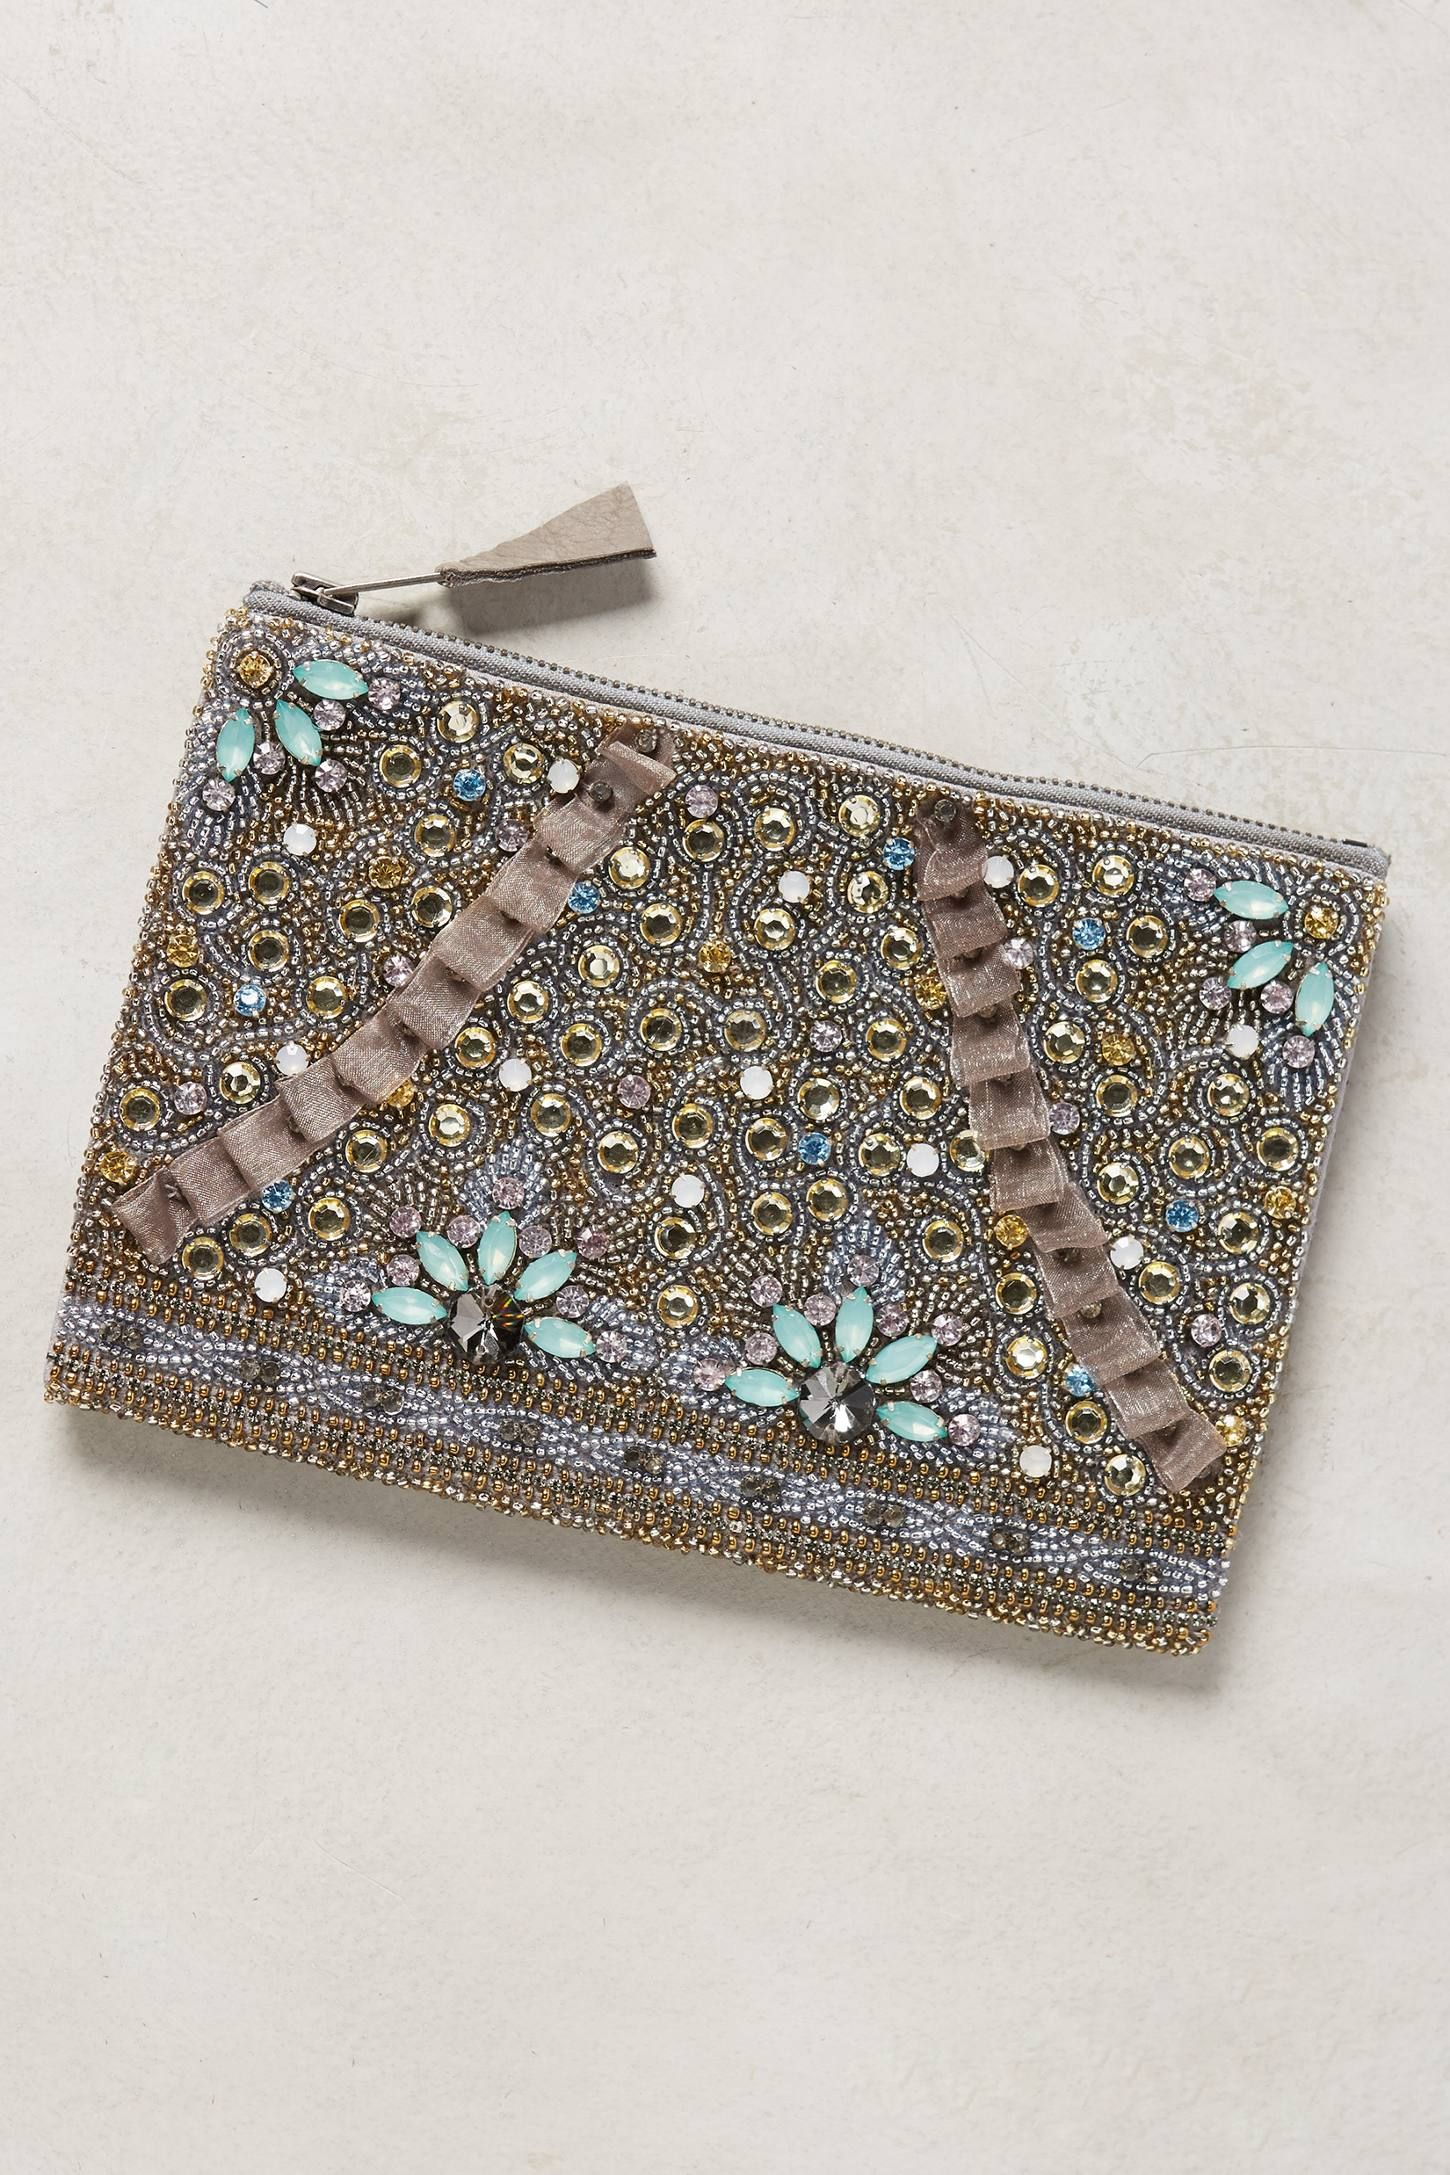 at anthropologie Myra Embellished Pouch